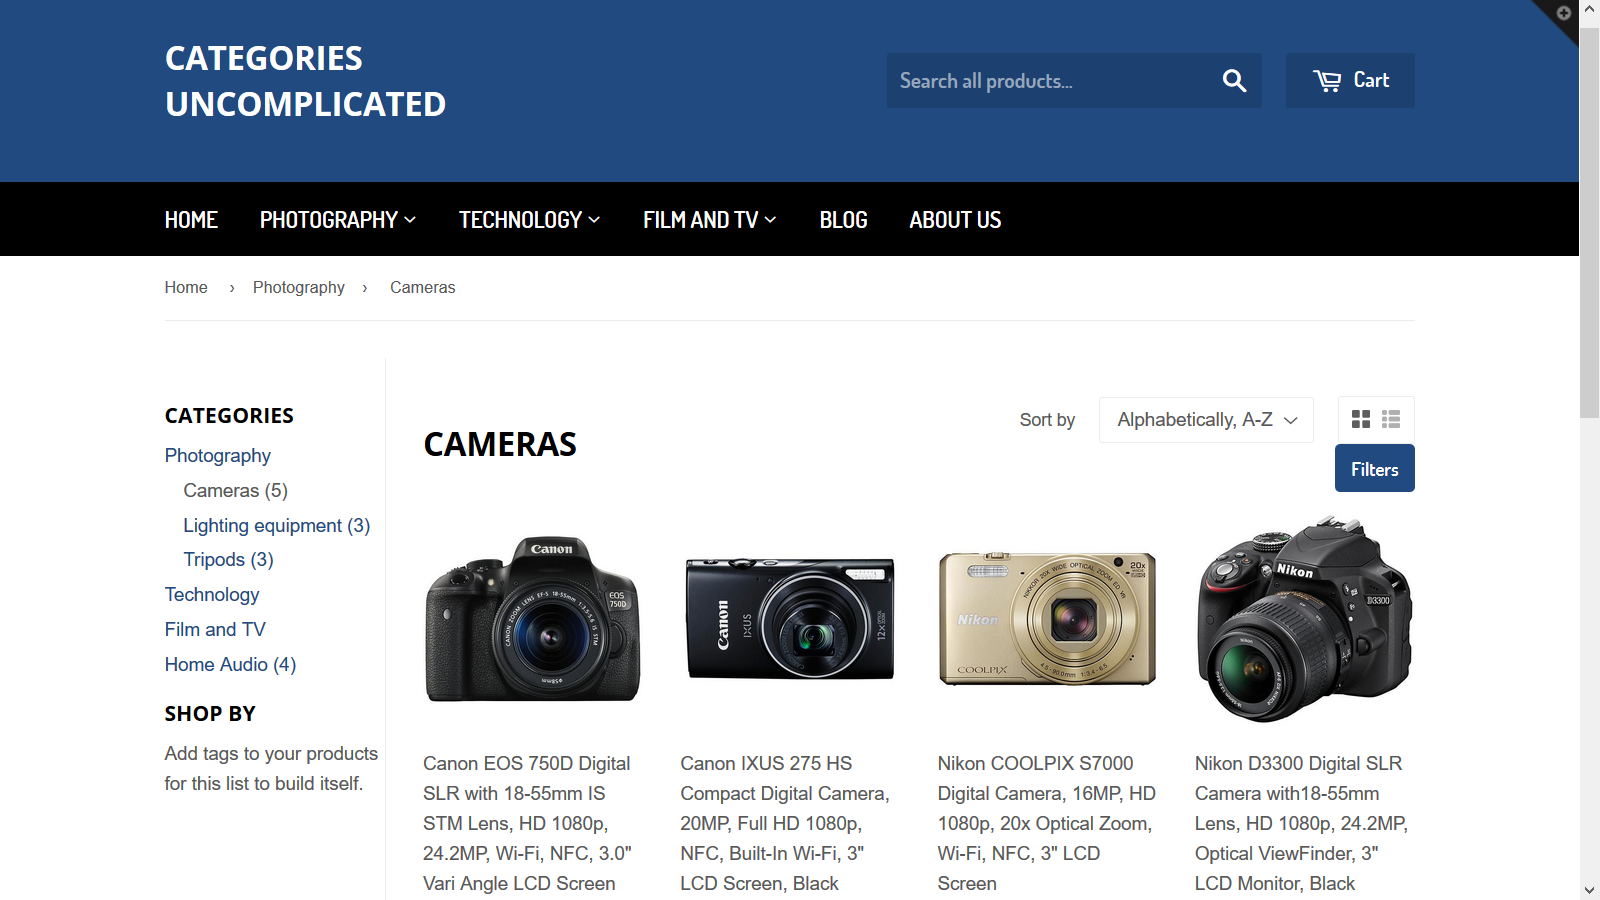 Current category selected in category list on collection pages